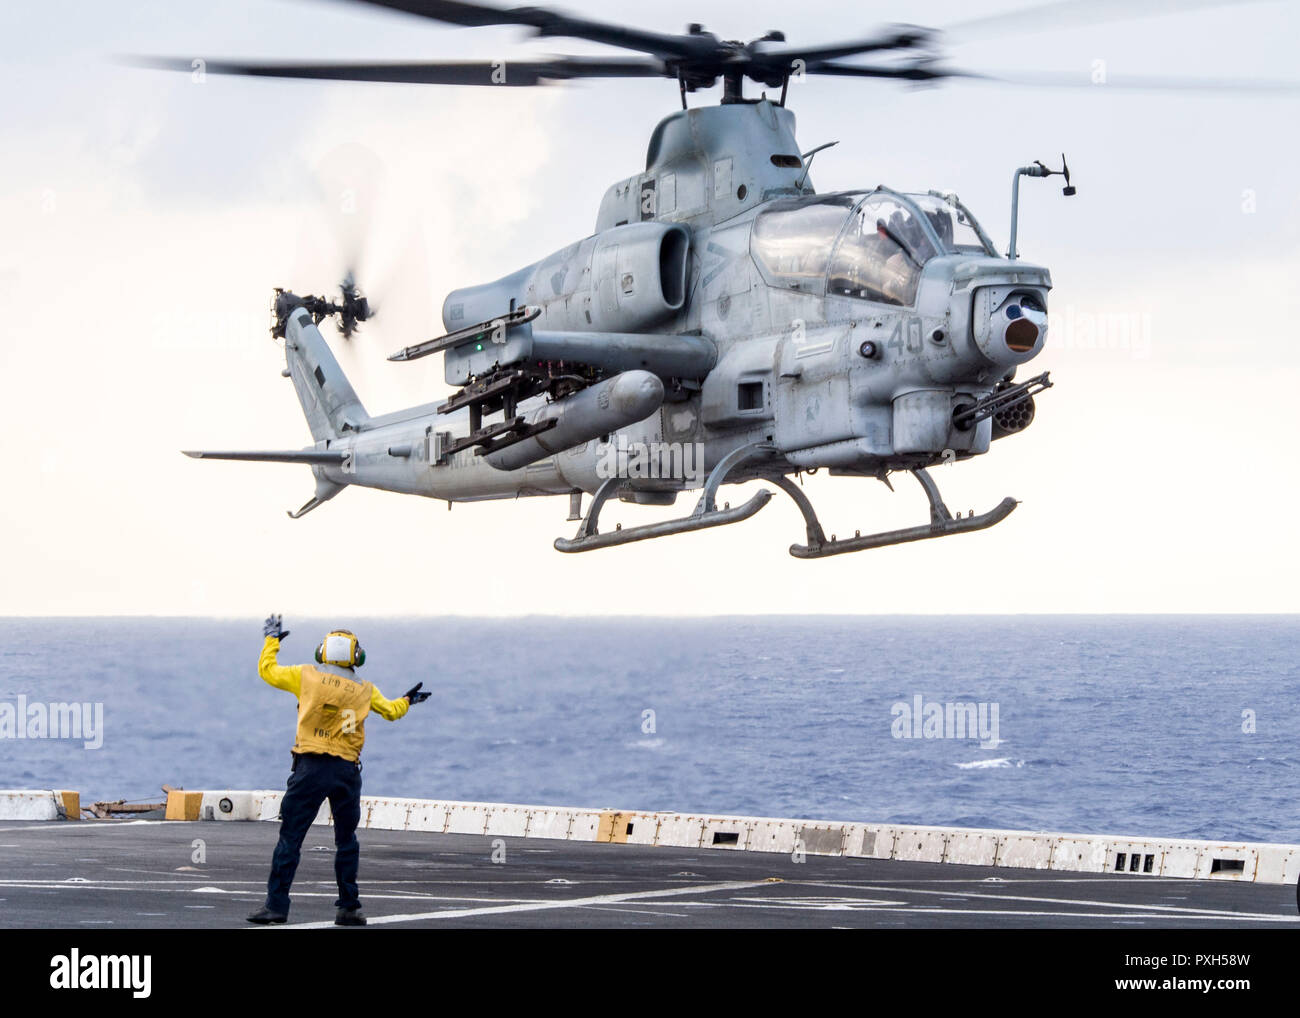 181020-N-PH222-1299 MEDITERRANEAN SEA (Oct. 20, 2018) Aviation Boatswain's Mate (Handling) Airman Eddie De La Cruz, signals an AH–1Z Viper helicopter, attached to Marine Medium Tiltrotor Squadron (VMM) 166 (Reinforced), from the flight deck of the San Antonio-class amphibious transport dock ship USS Anchorage (LPD 23) during flight operations in the Mediterranean Sea, Oct. 20, 2018. Anchorage and embarked 13th Marine Expeditionary Unit are deployed to the U.S. 6th Fleet area of operations as a crisis response force in support of regional partners as well as to promote U.S. national security in - Stock Image